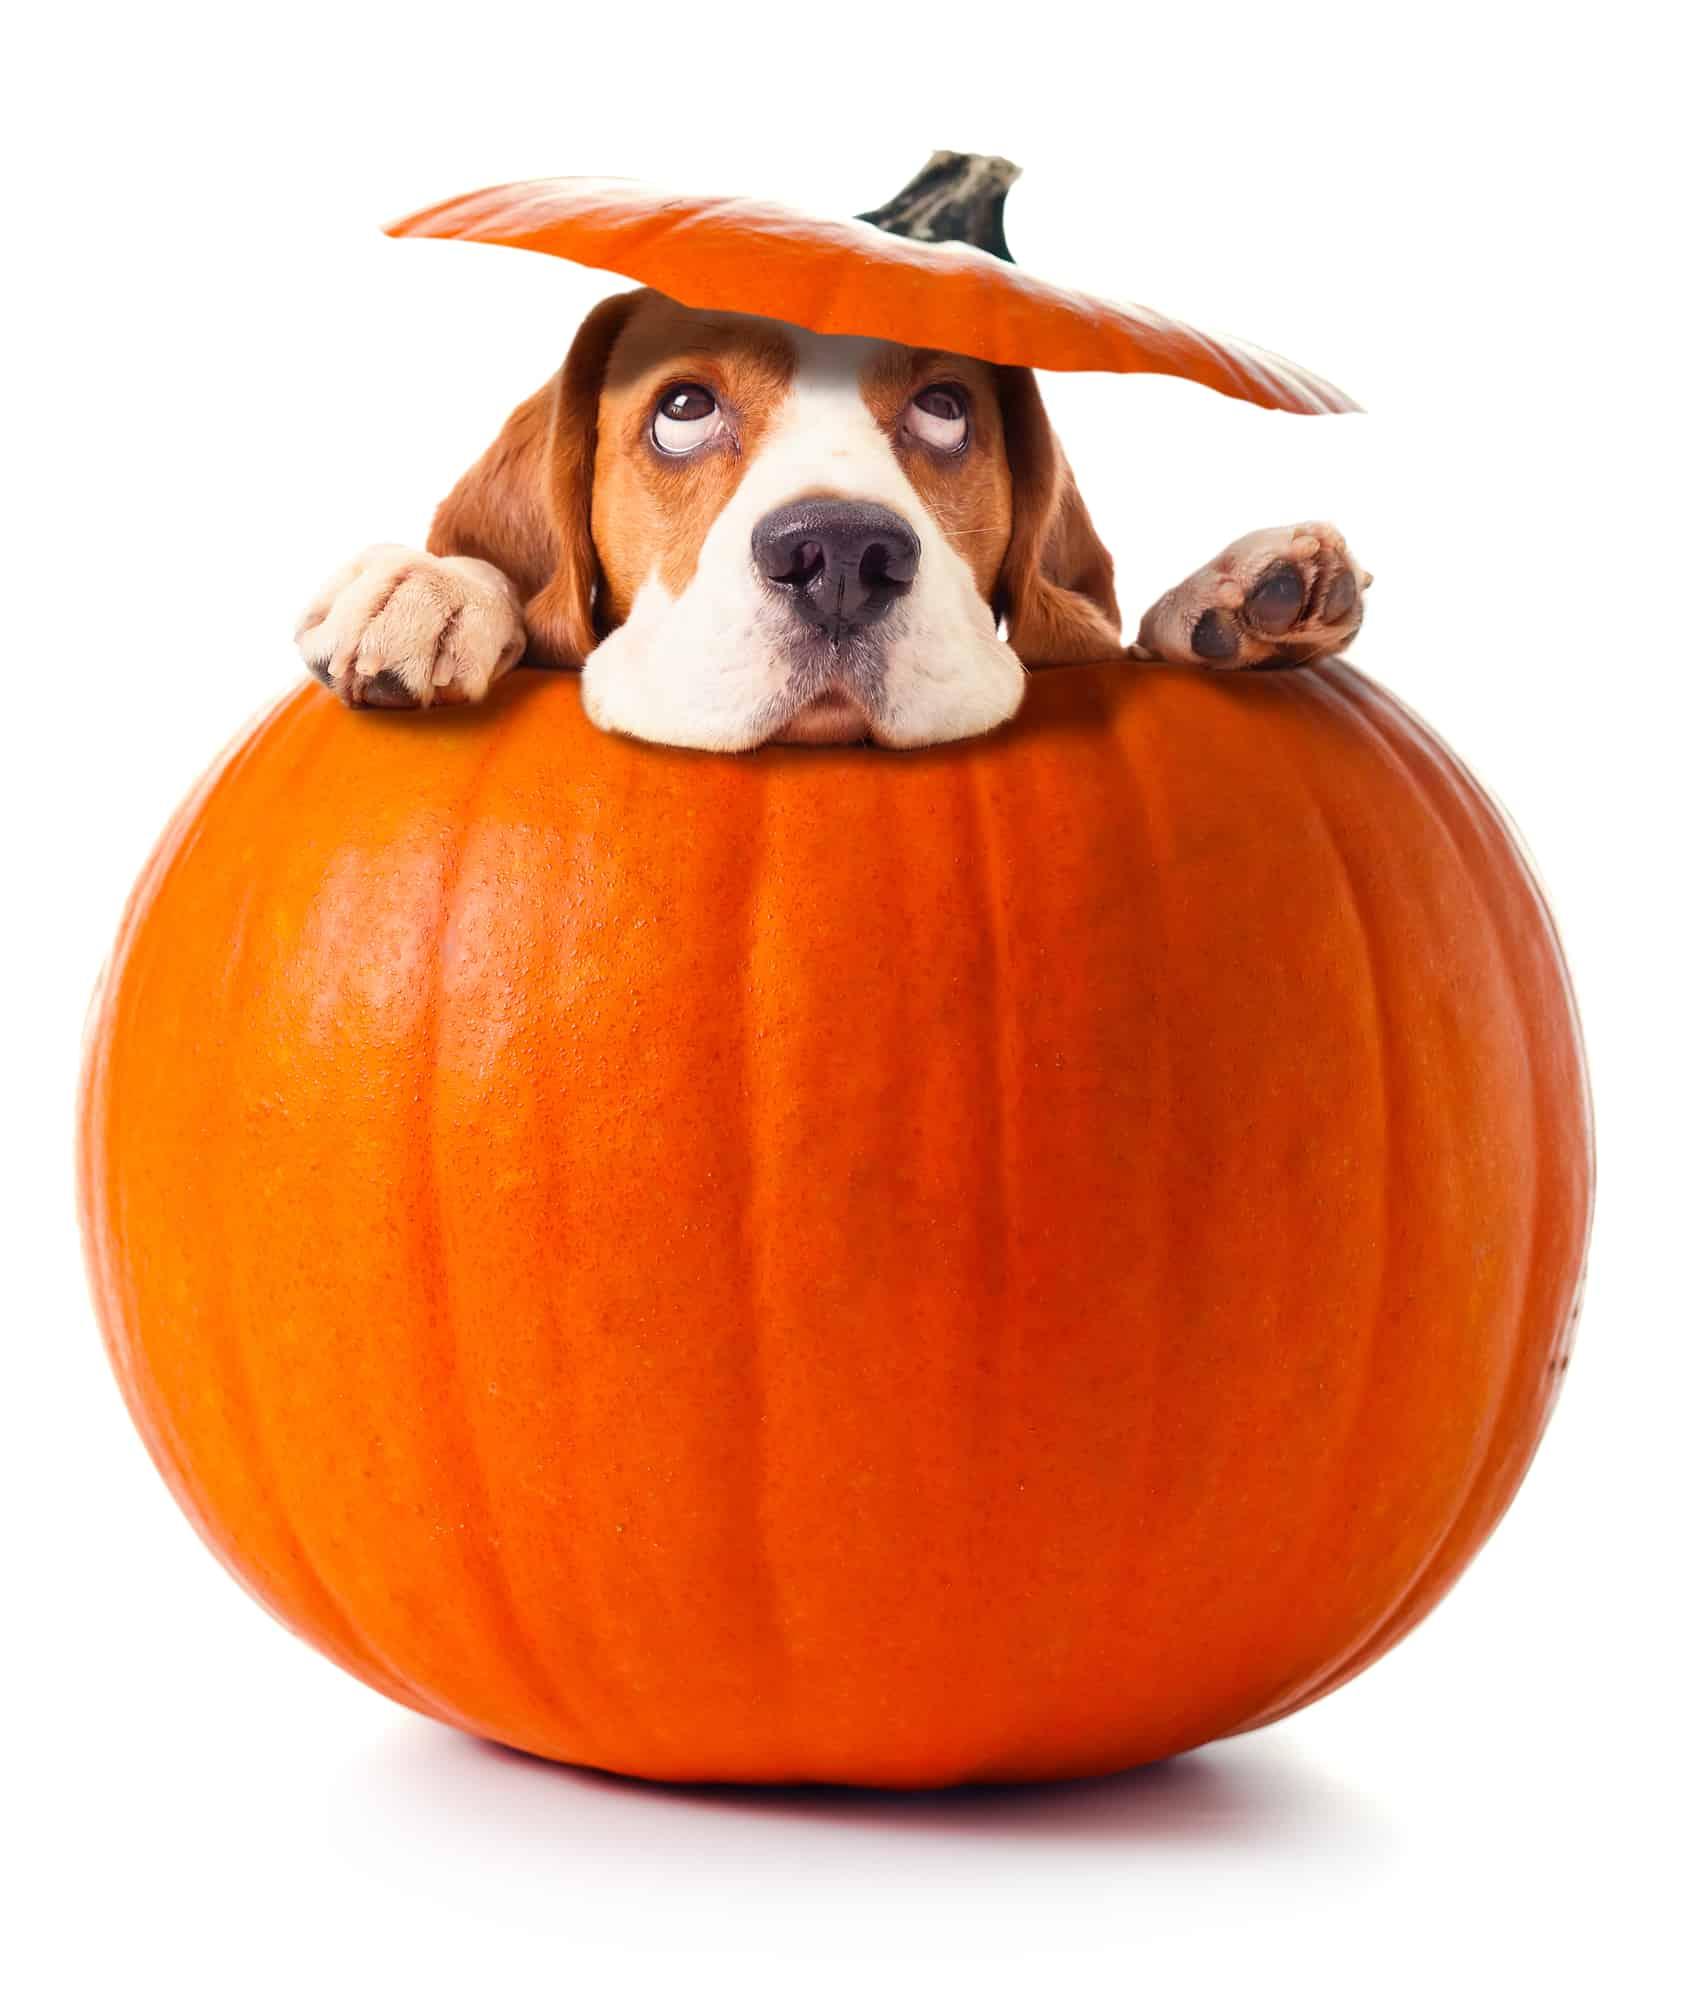 pumpkin carbs post image with dog inside of pumpkin